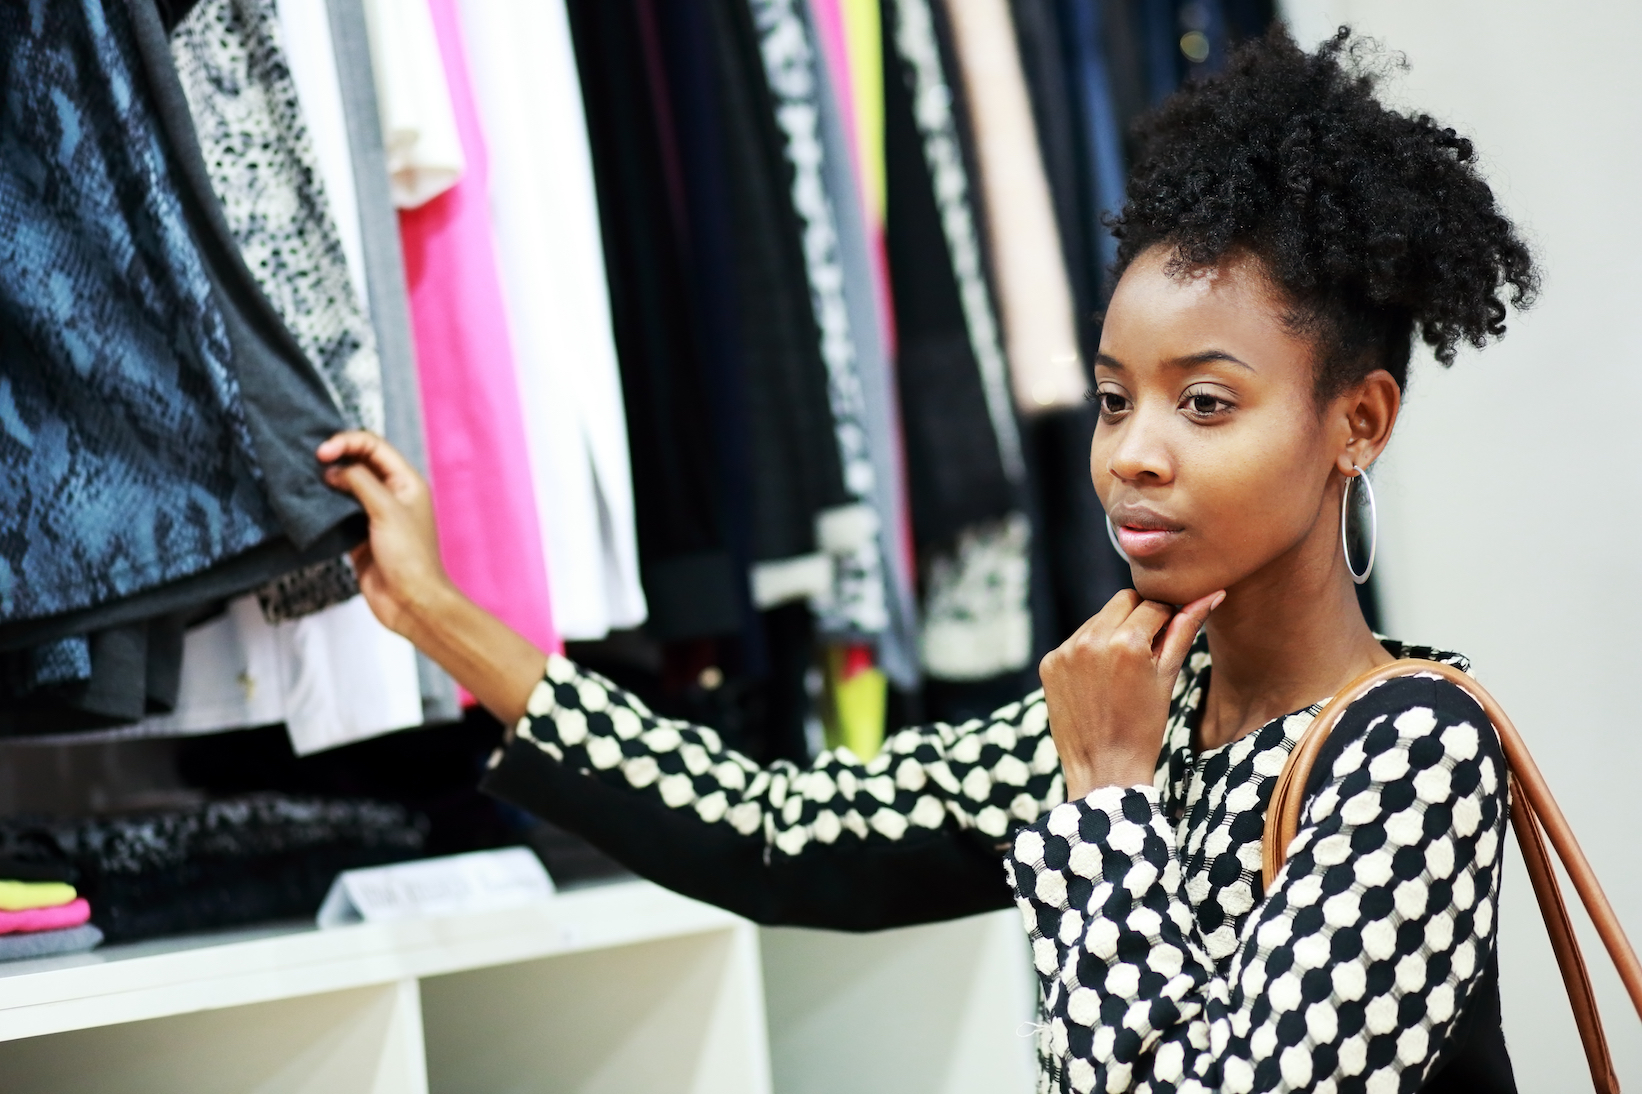 A new study has shed light on the rampant racial profiling that occurs in the retail industry, where black shoppers are often targeted.